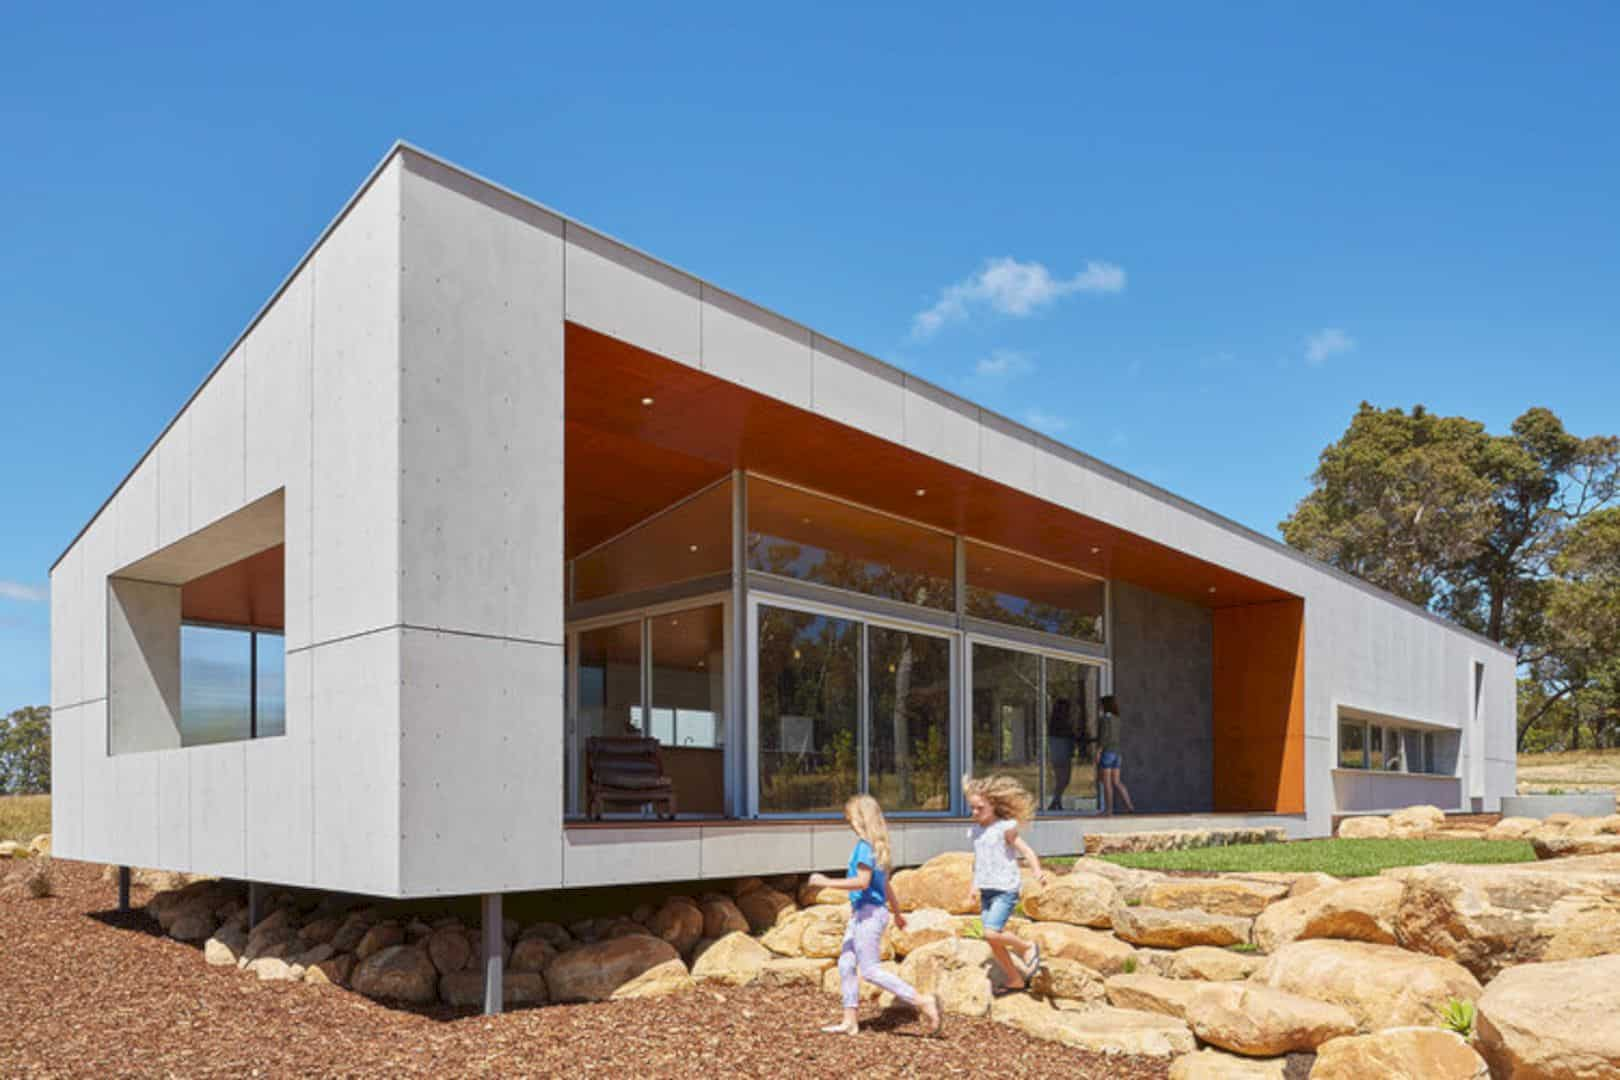 Paddock House: Sustainability of A Family House with A Series of Framed Apertures